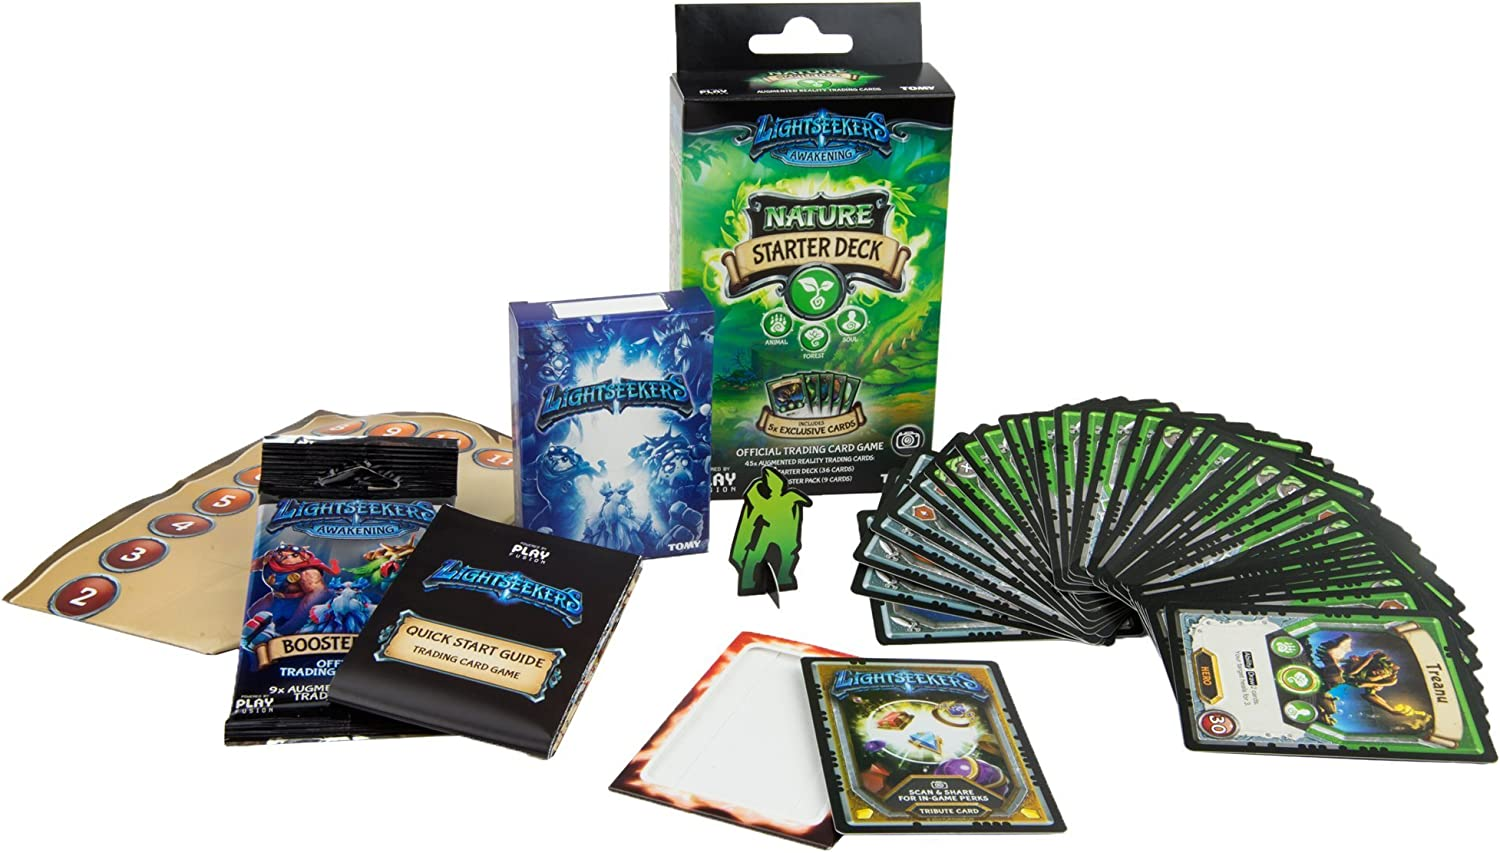 Lightseekers Trading Card Game Starter Deck, Nature